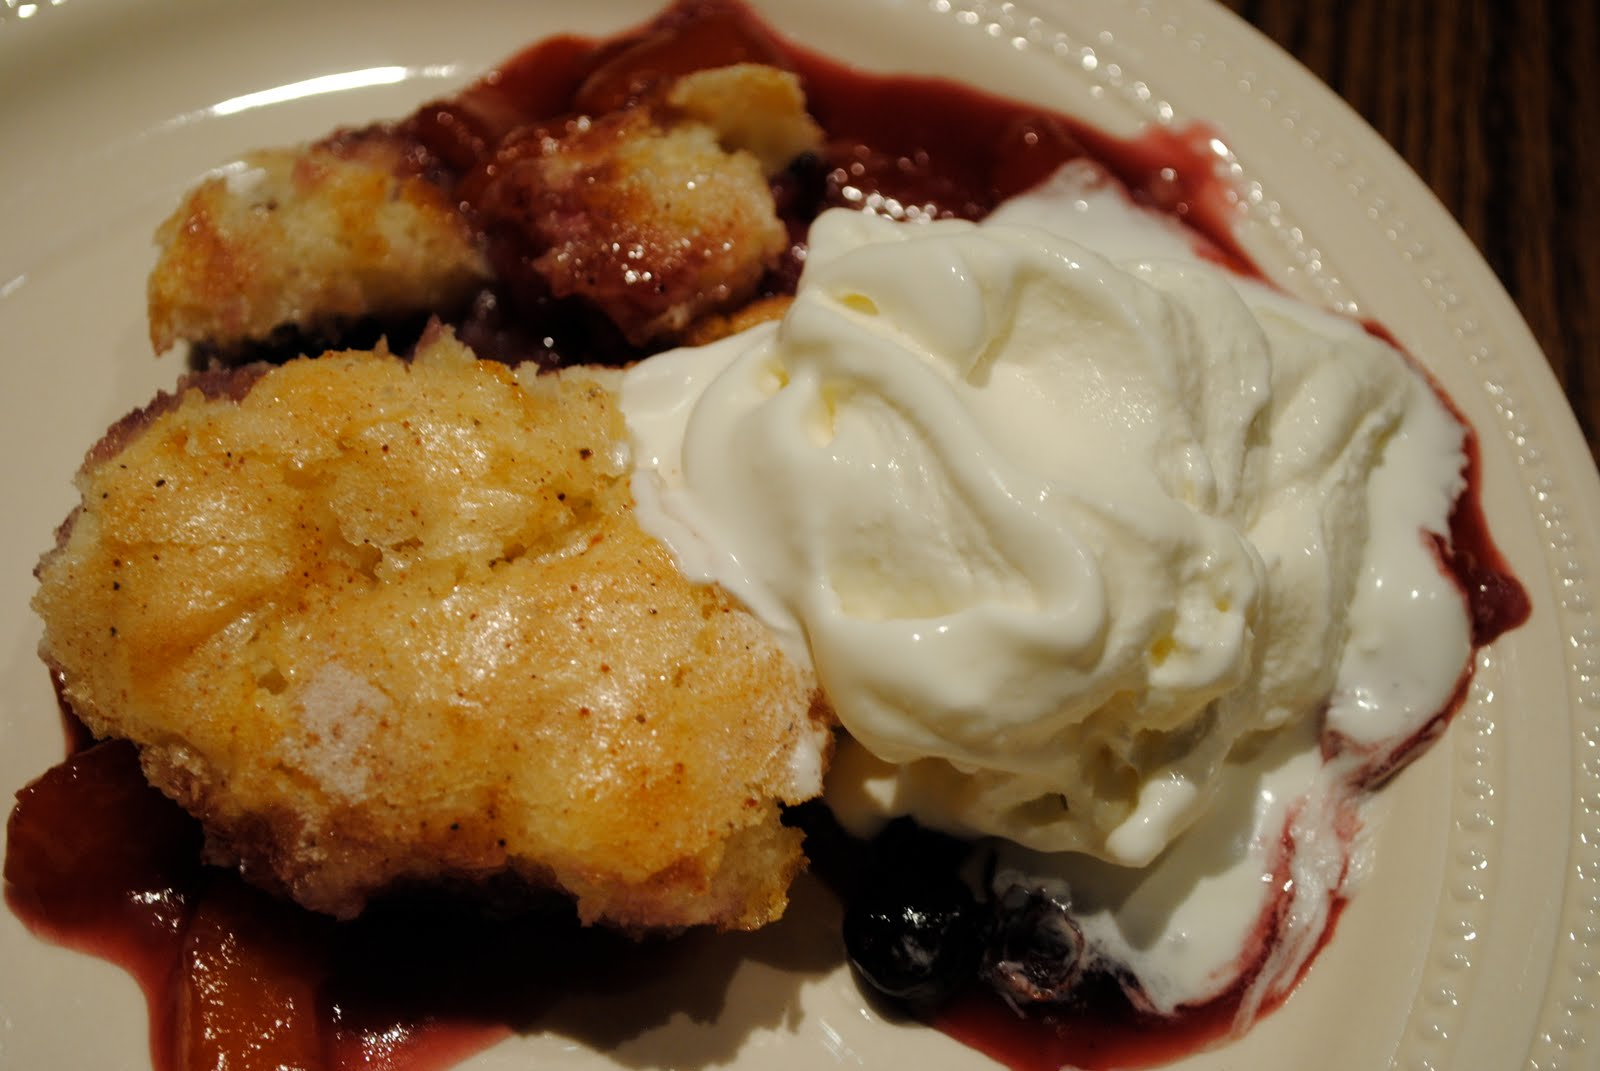 Peach Blueberry Cobbler with Homemade Vanilla Ice Cream